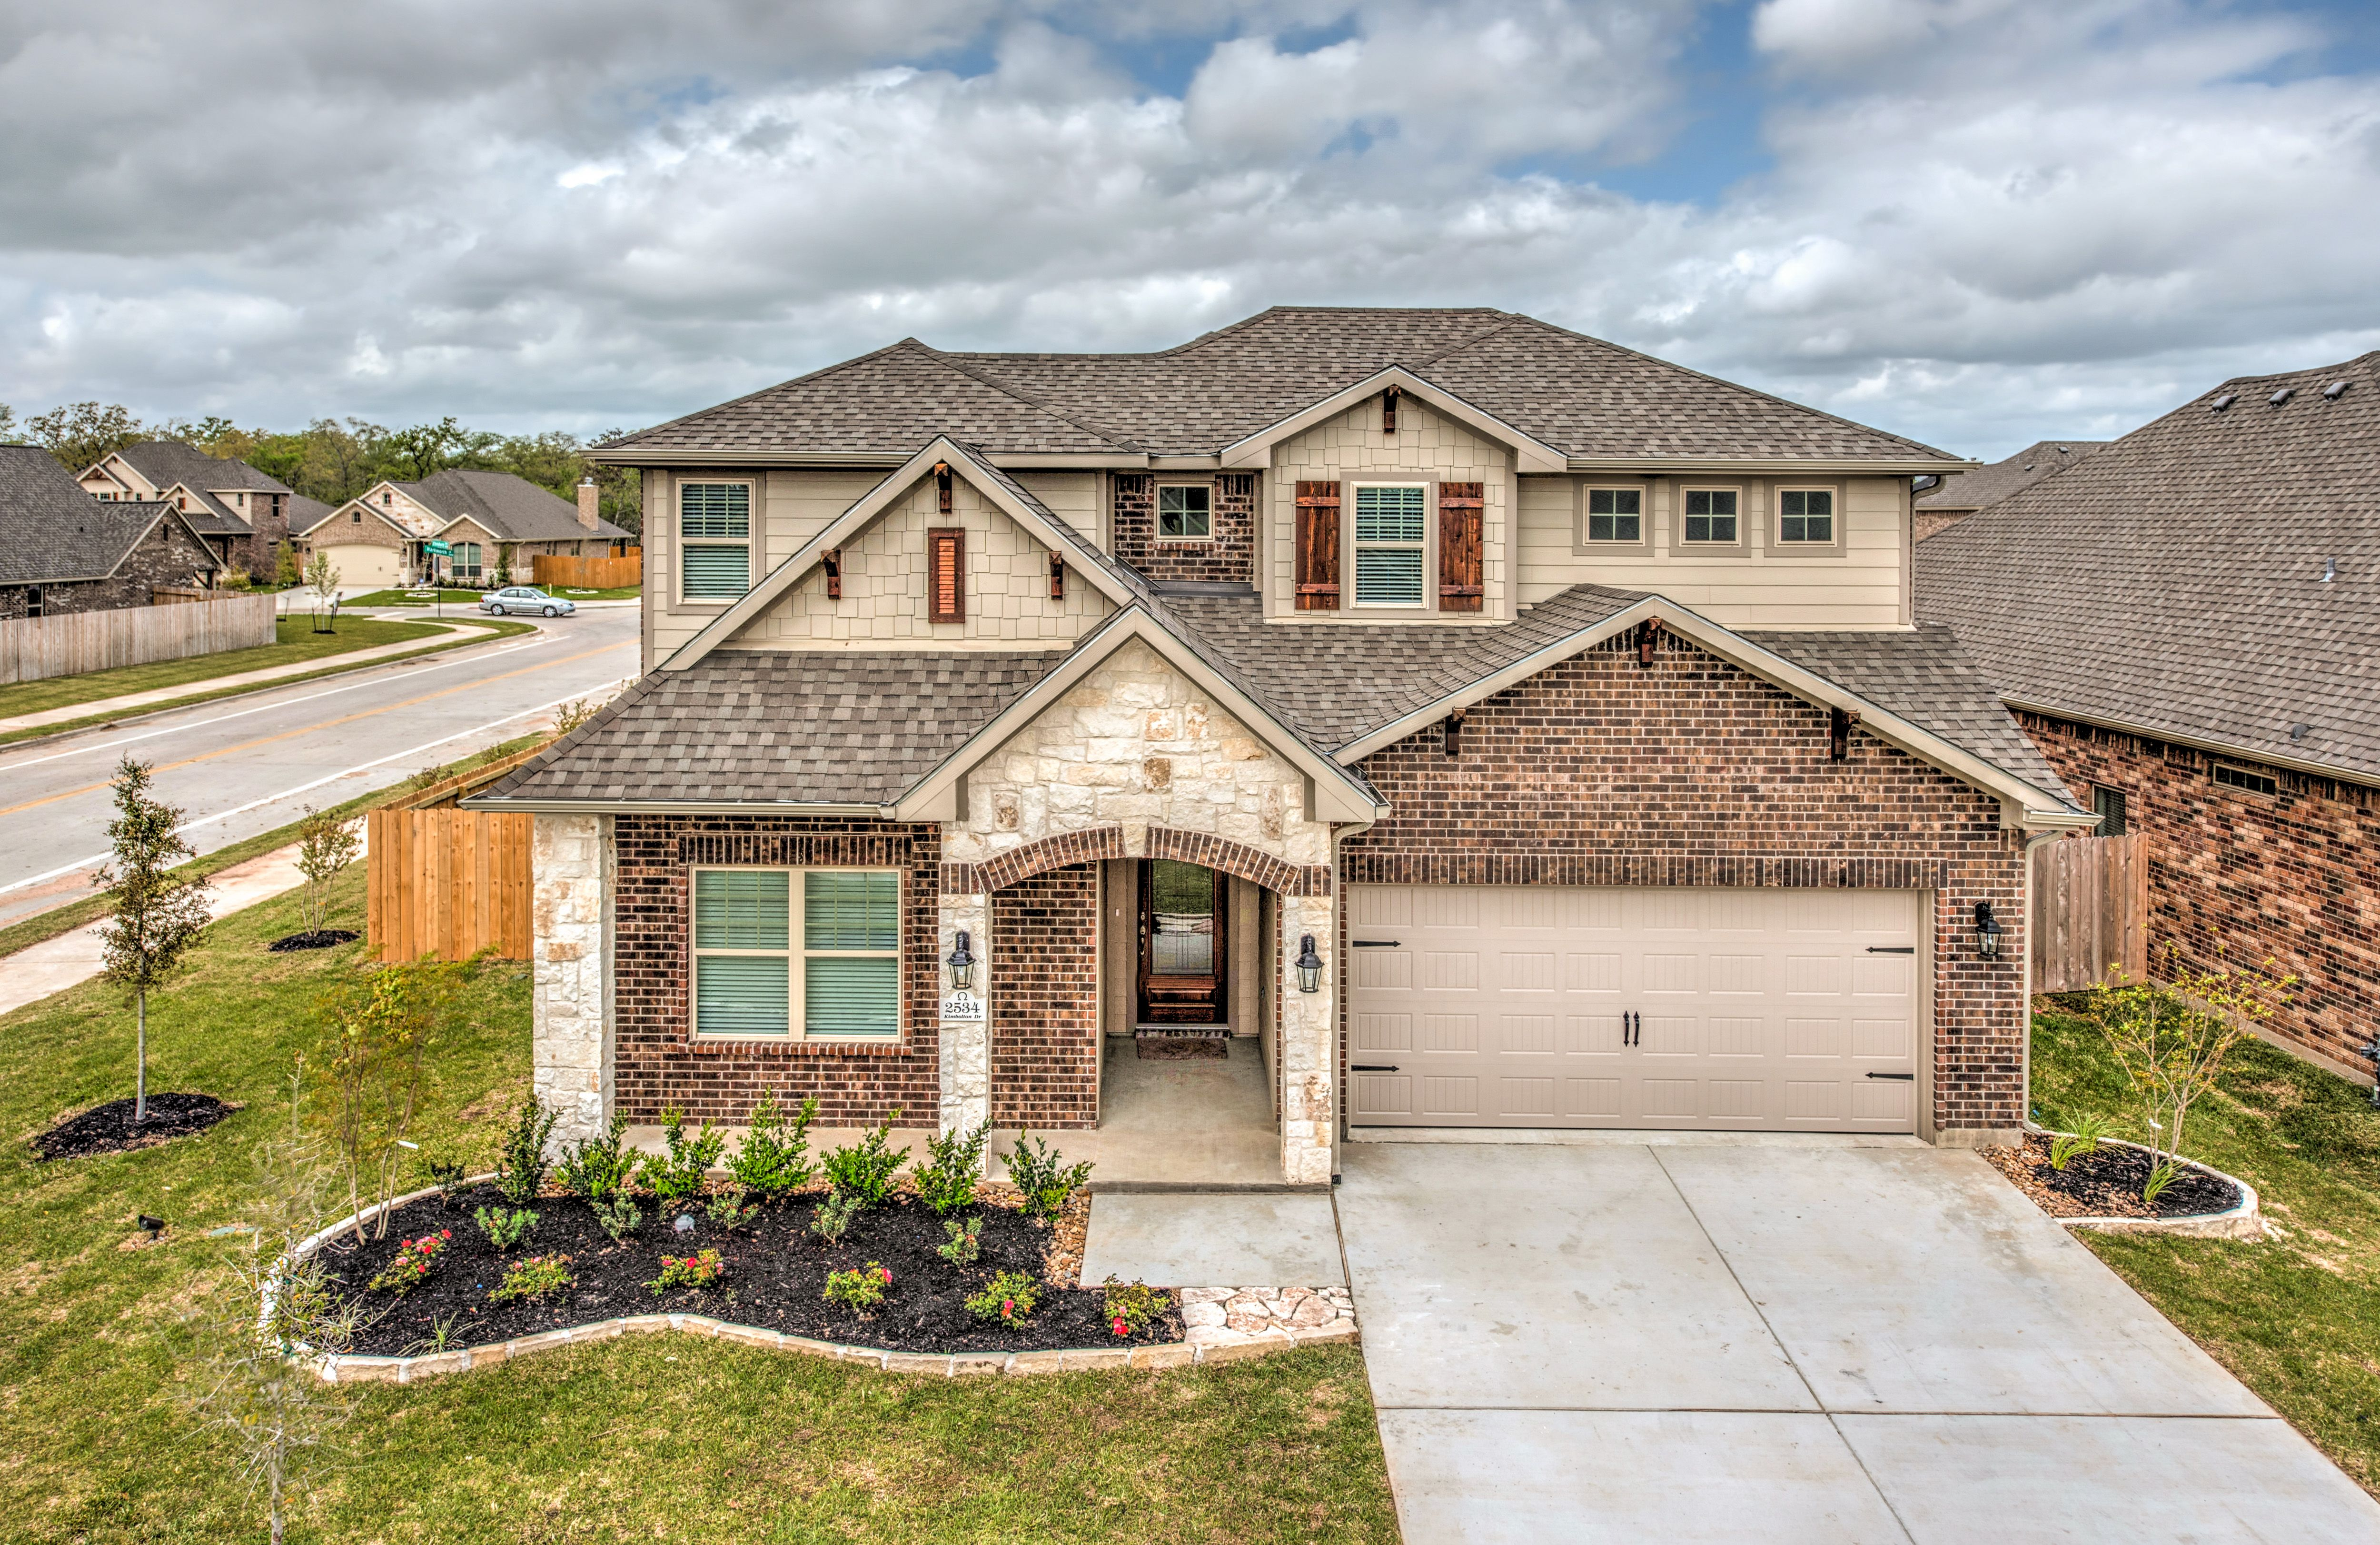 The Beautiful New Model Home By Omega Builders In Castlegate Ii Model Homes Dream House Home